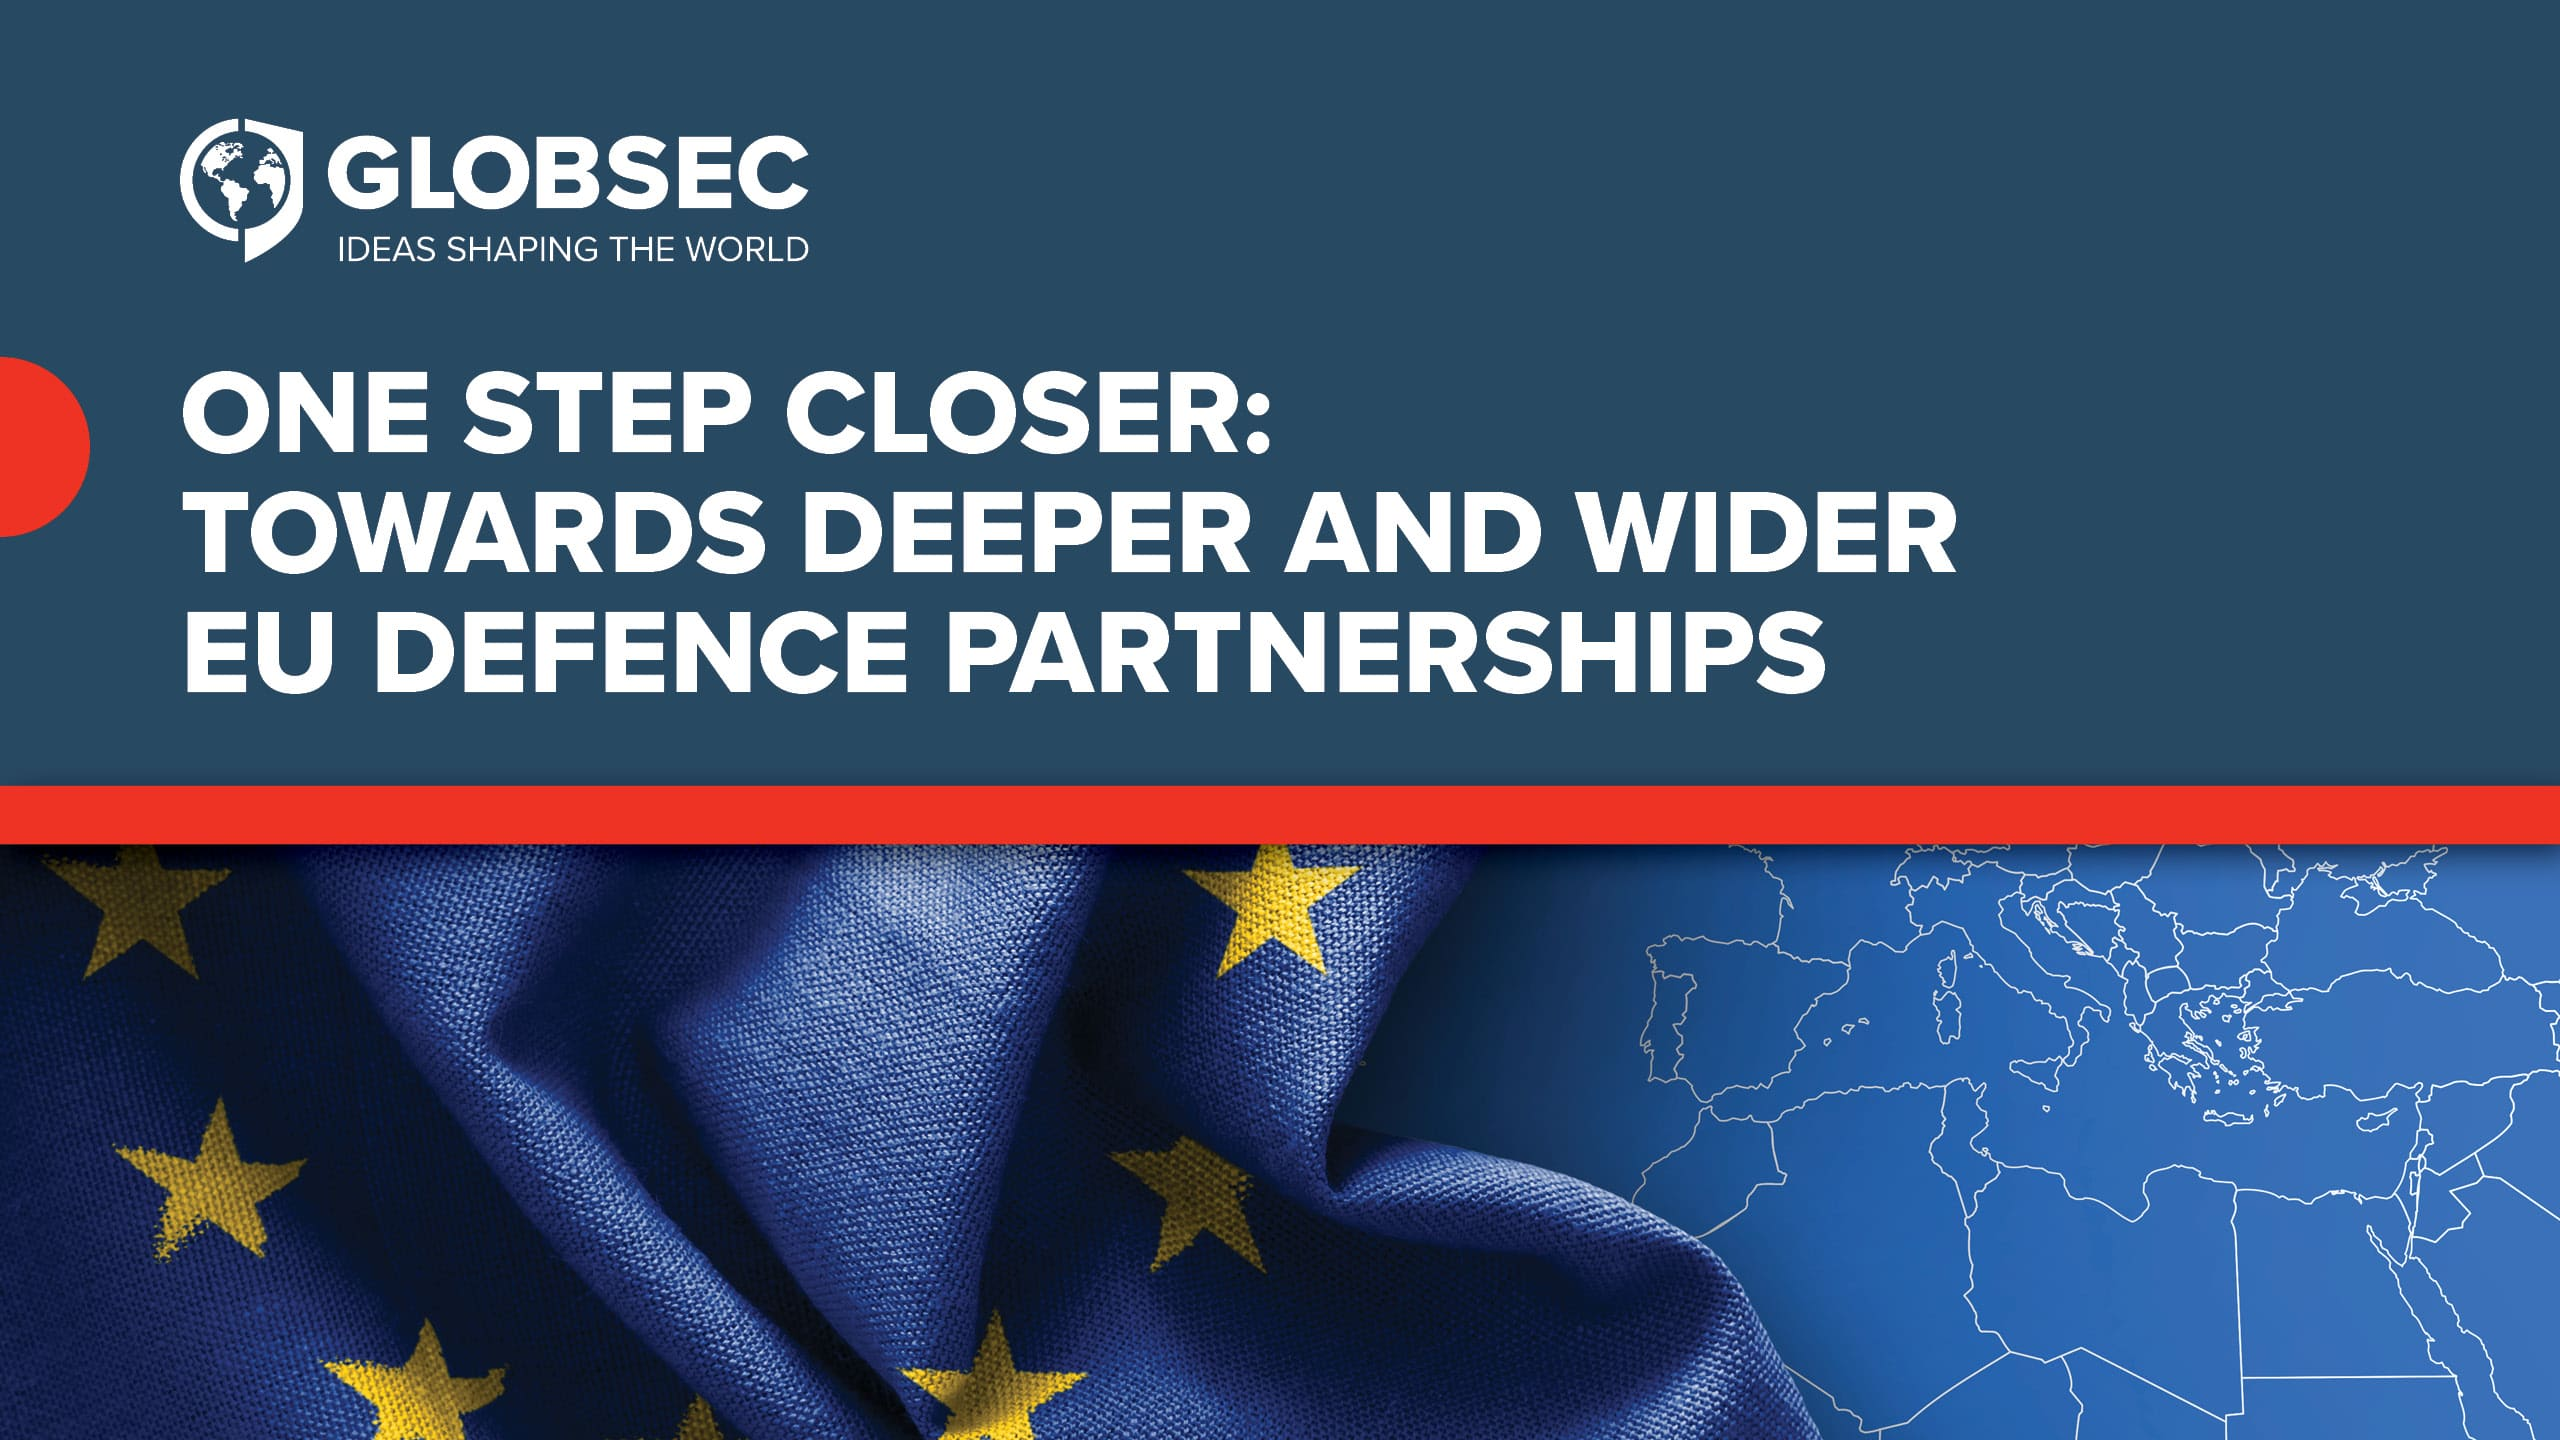 One Step Closer: Towards Deeper and Wider EU Defence Partnerships